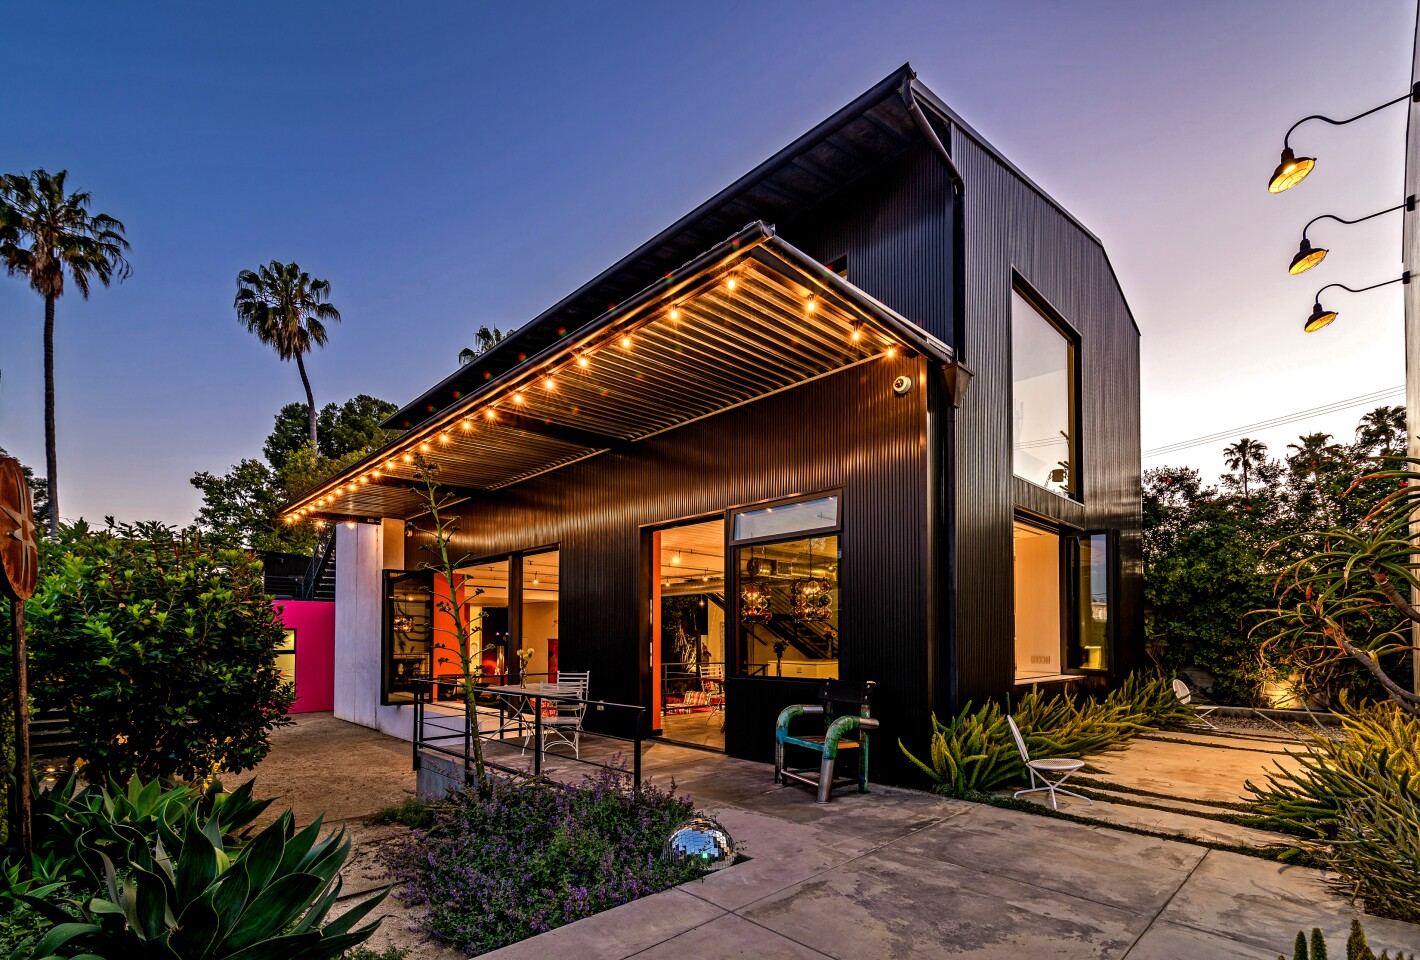 The unusual Venice compound, created for a toy company executive, evokes an urban warehouse with its metal siding and outdoor staircases that resemble fire escapes. Inside, polished concrete floors and exposed ductwork pair with artistic fixtures and splashes of color. Listed for $8.25 million, the fenced and hedged property includes a three-bedroom main house and a 430-square-foot studio. The backyard patio was inspired by the loading dock at Santa Monica's Bergamot Station. Two rooftop decks and a fire pit are among other outdoor features. A pixelated art piece by French street artist Invader, believed to be the artist's first residential commission, adorns a side of the of the warehouse-like design.